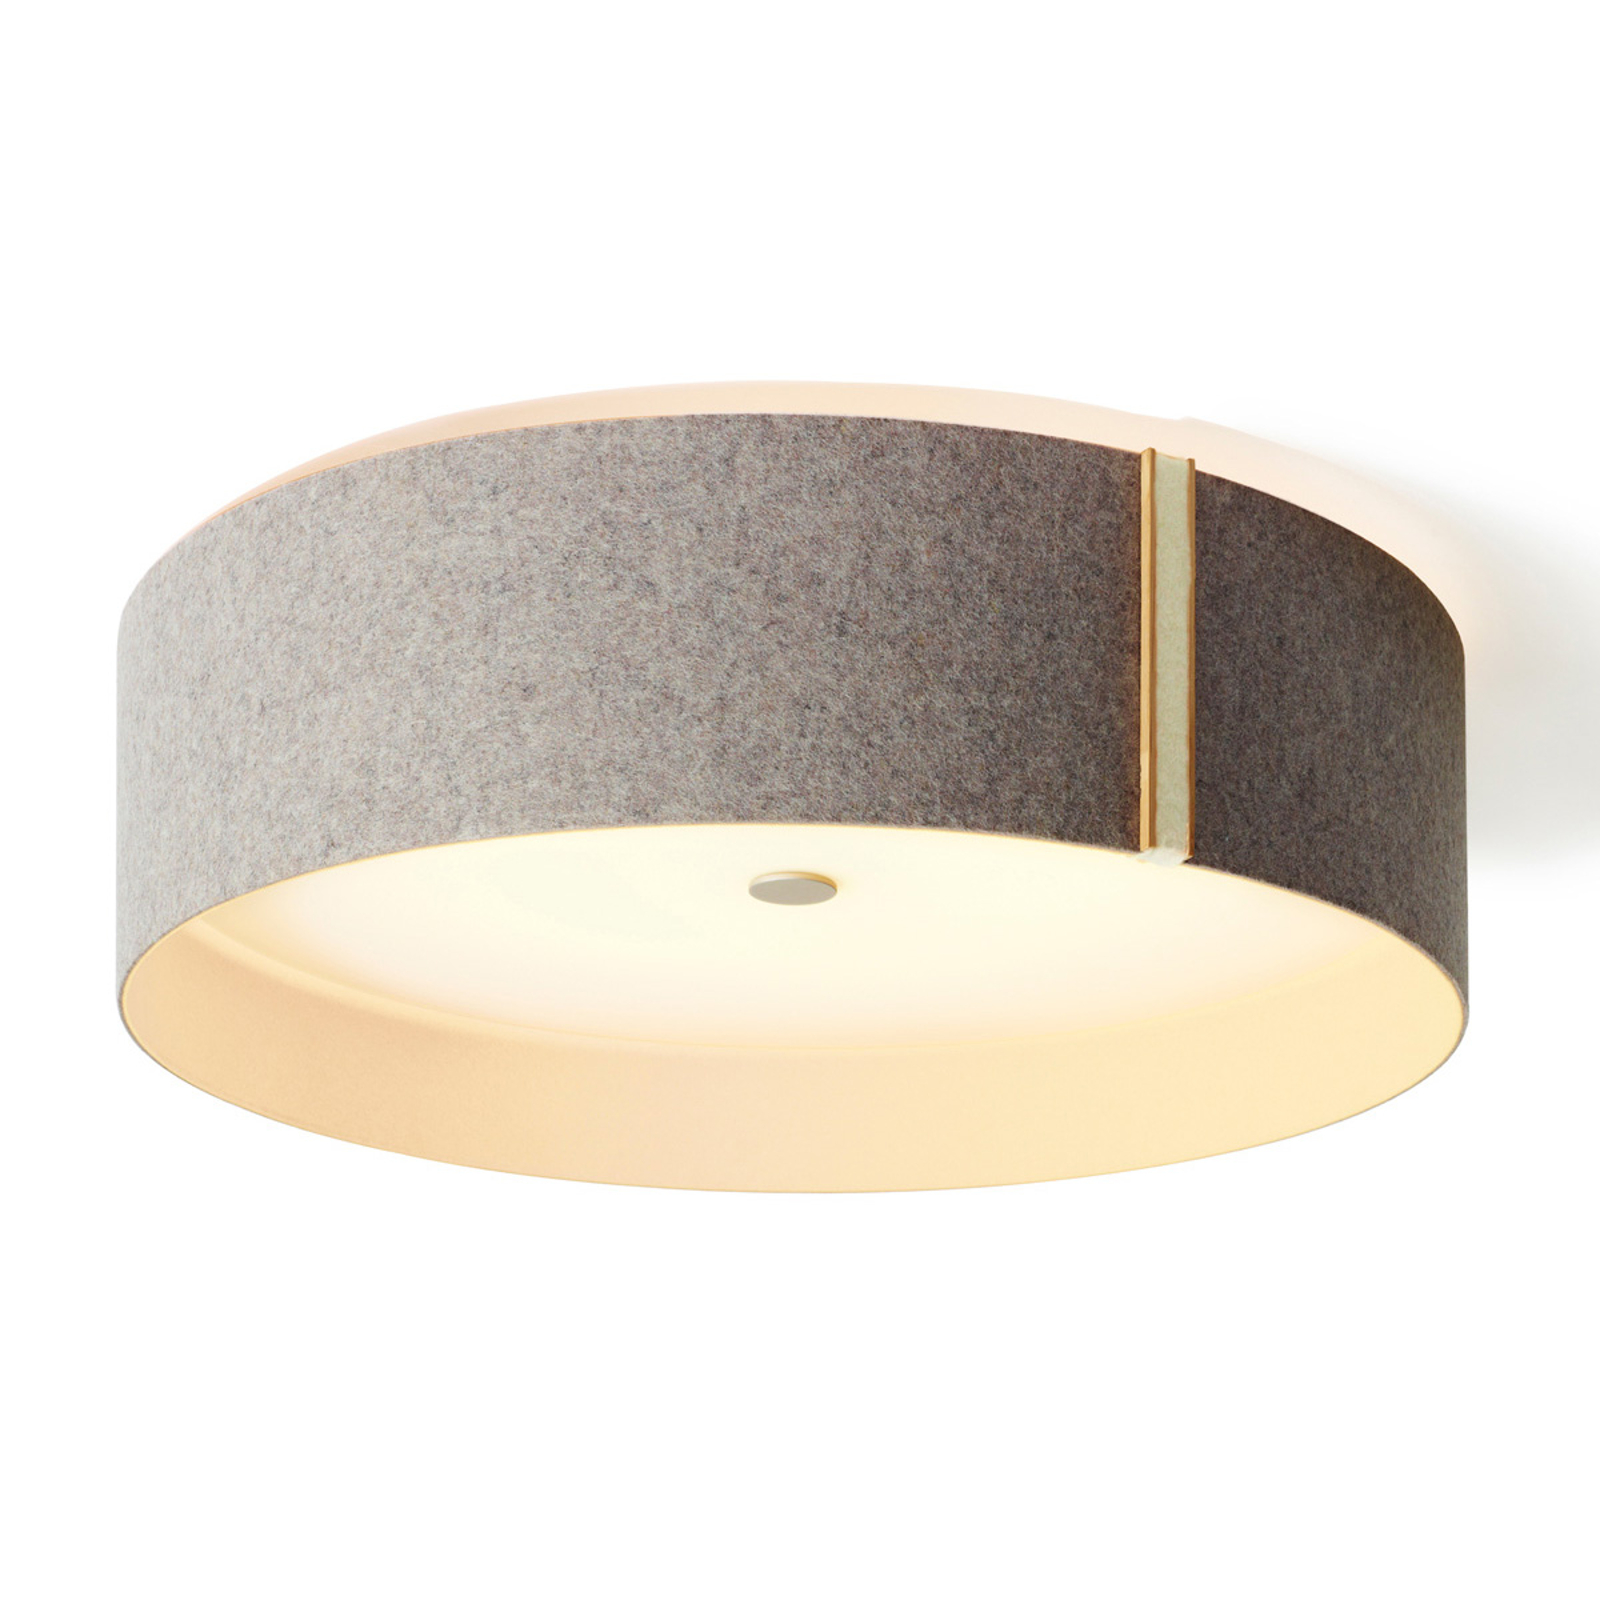 Felt ceiling light Lara felt, LED grey-wool white_2600507_1